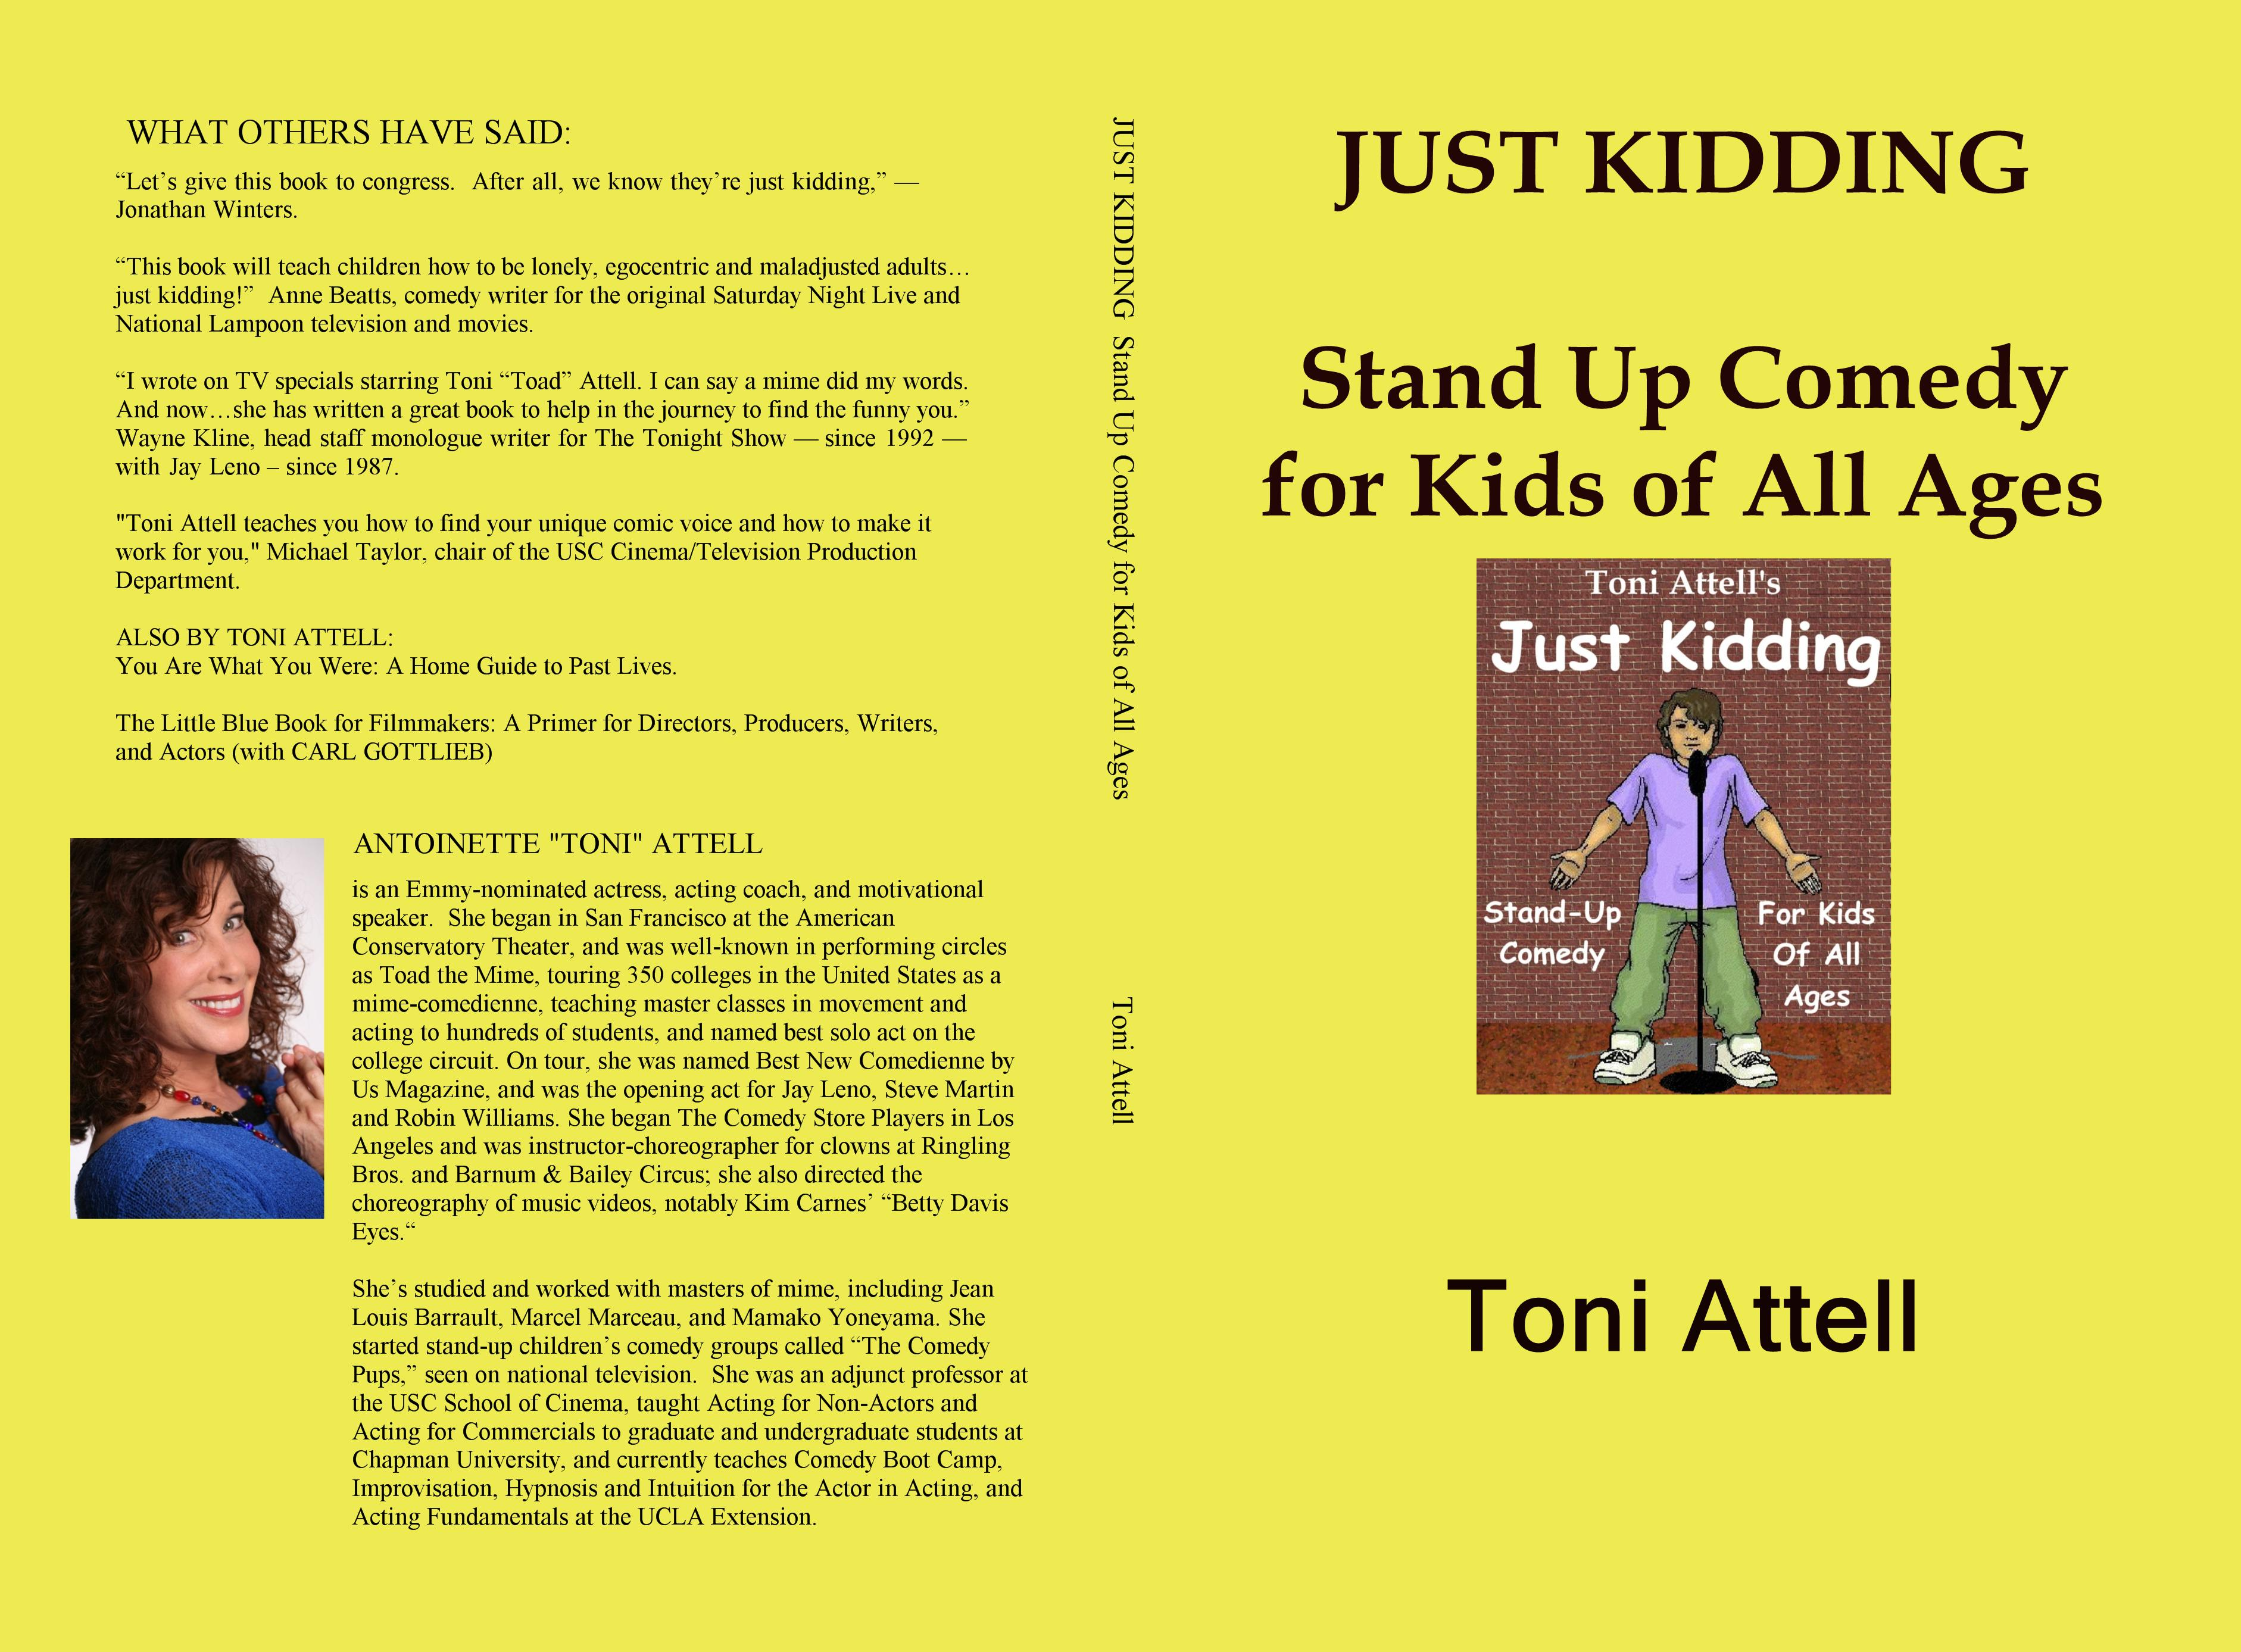 ... JUST KIDDING Stand Up Comedy for Kids of All Ages cover image